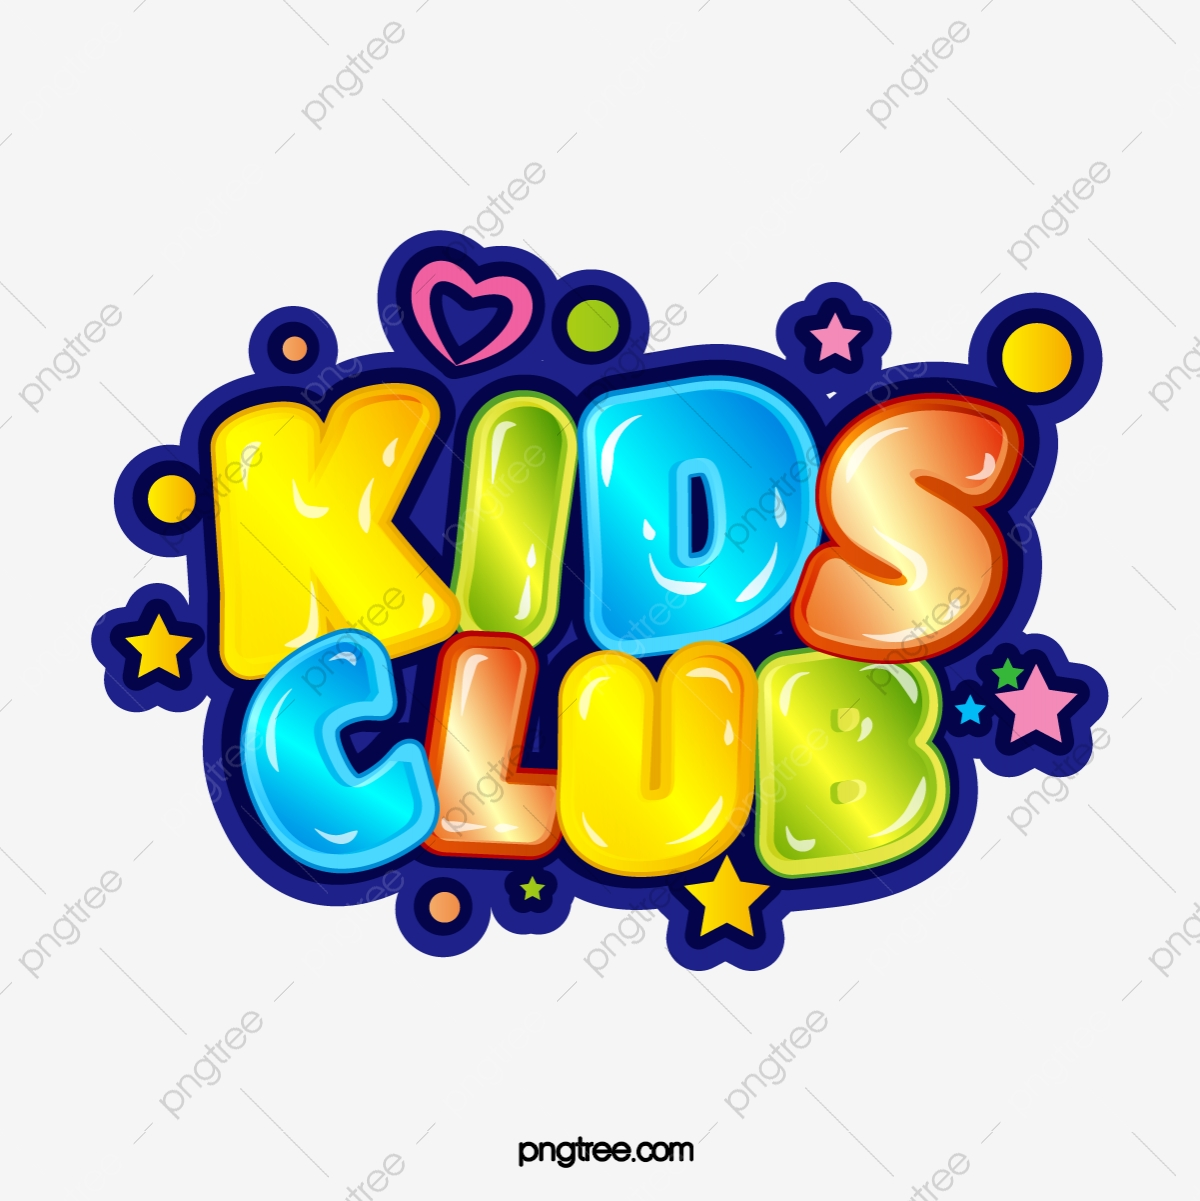 Kids Club Cute Jelly Effect Bubble Stereo Gradient Color Art Word